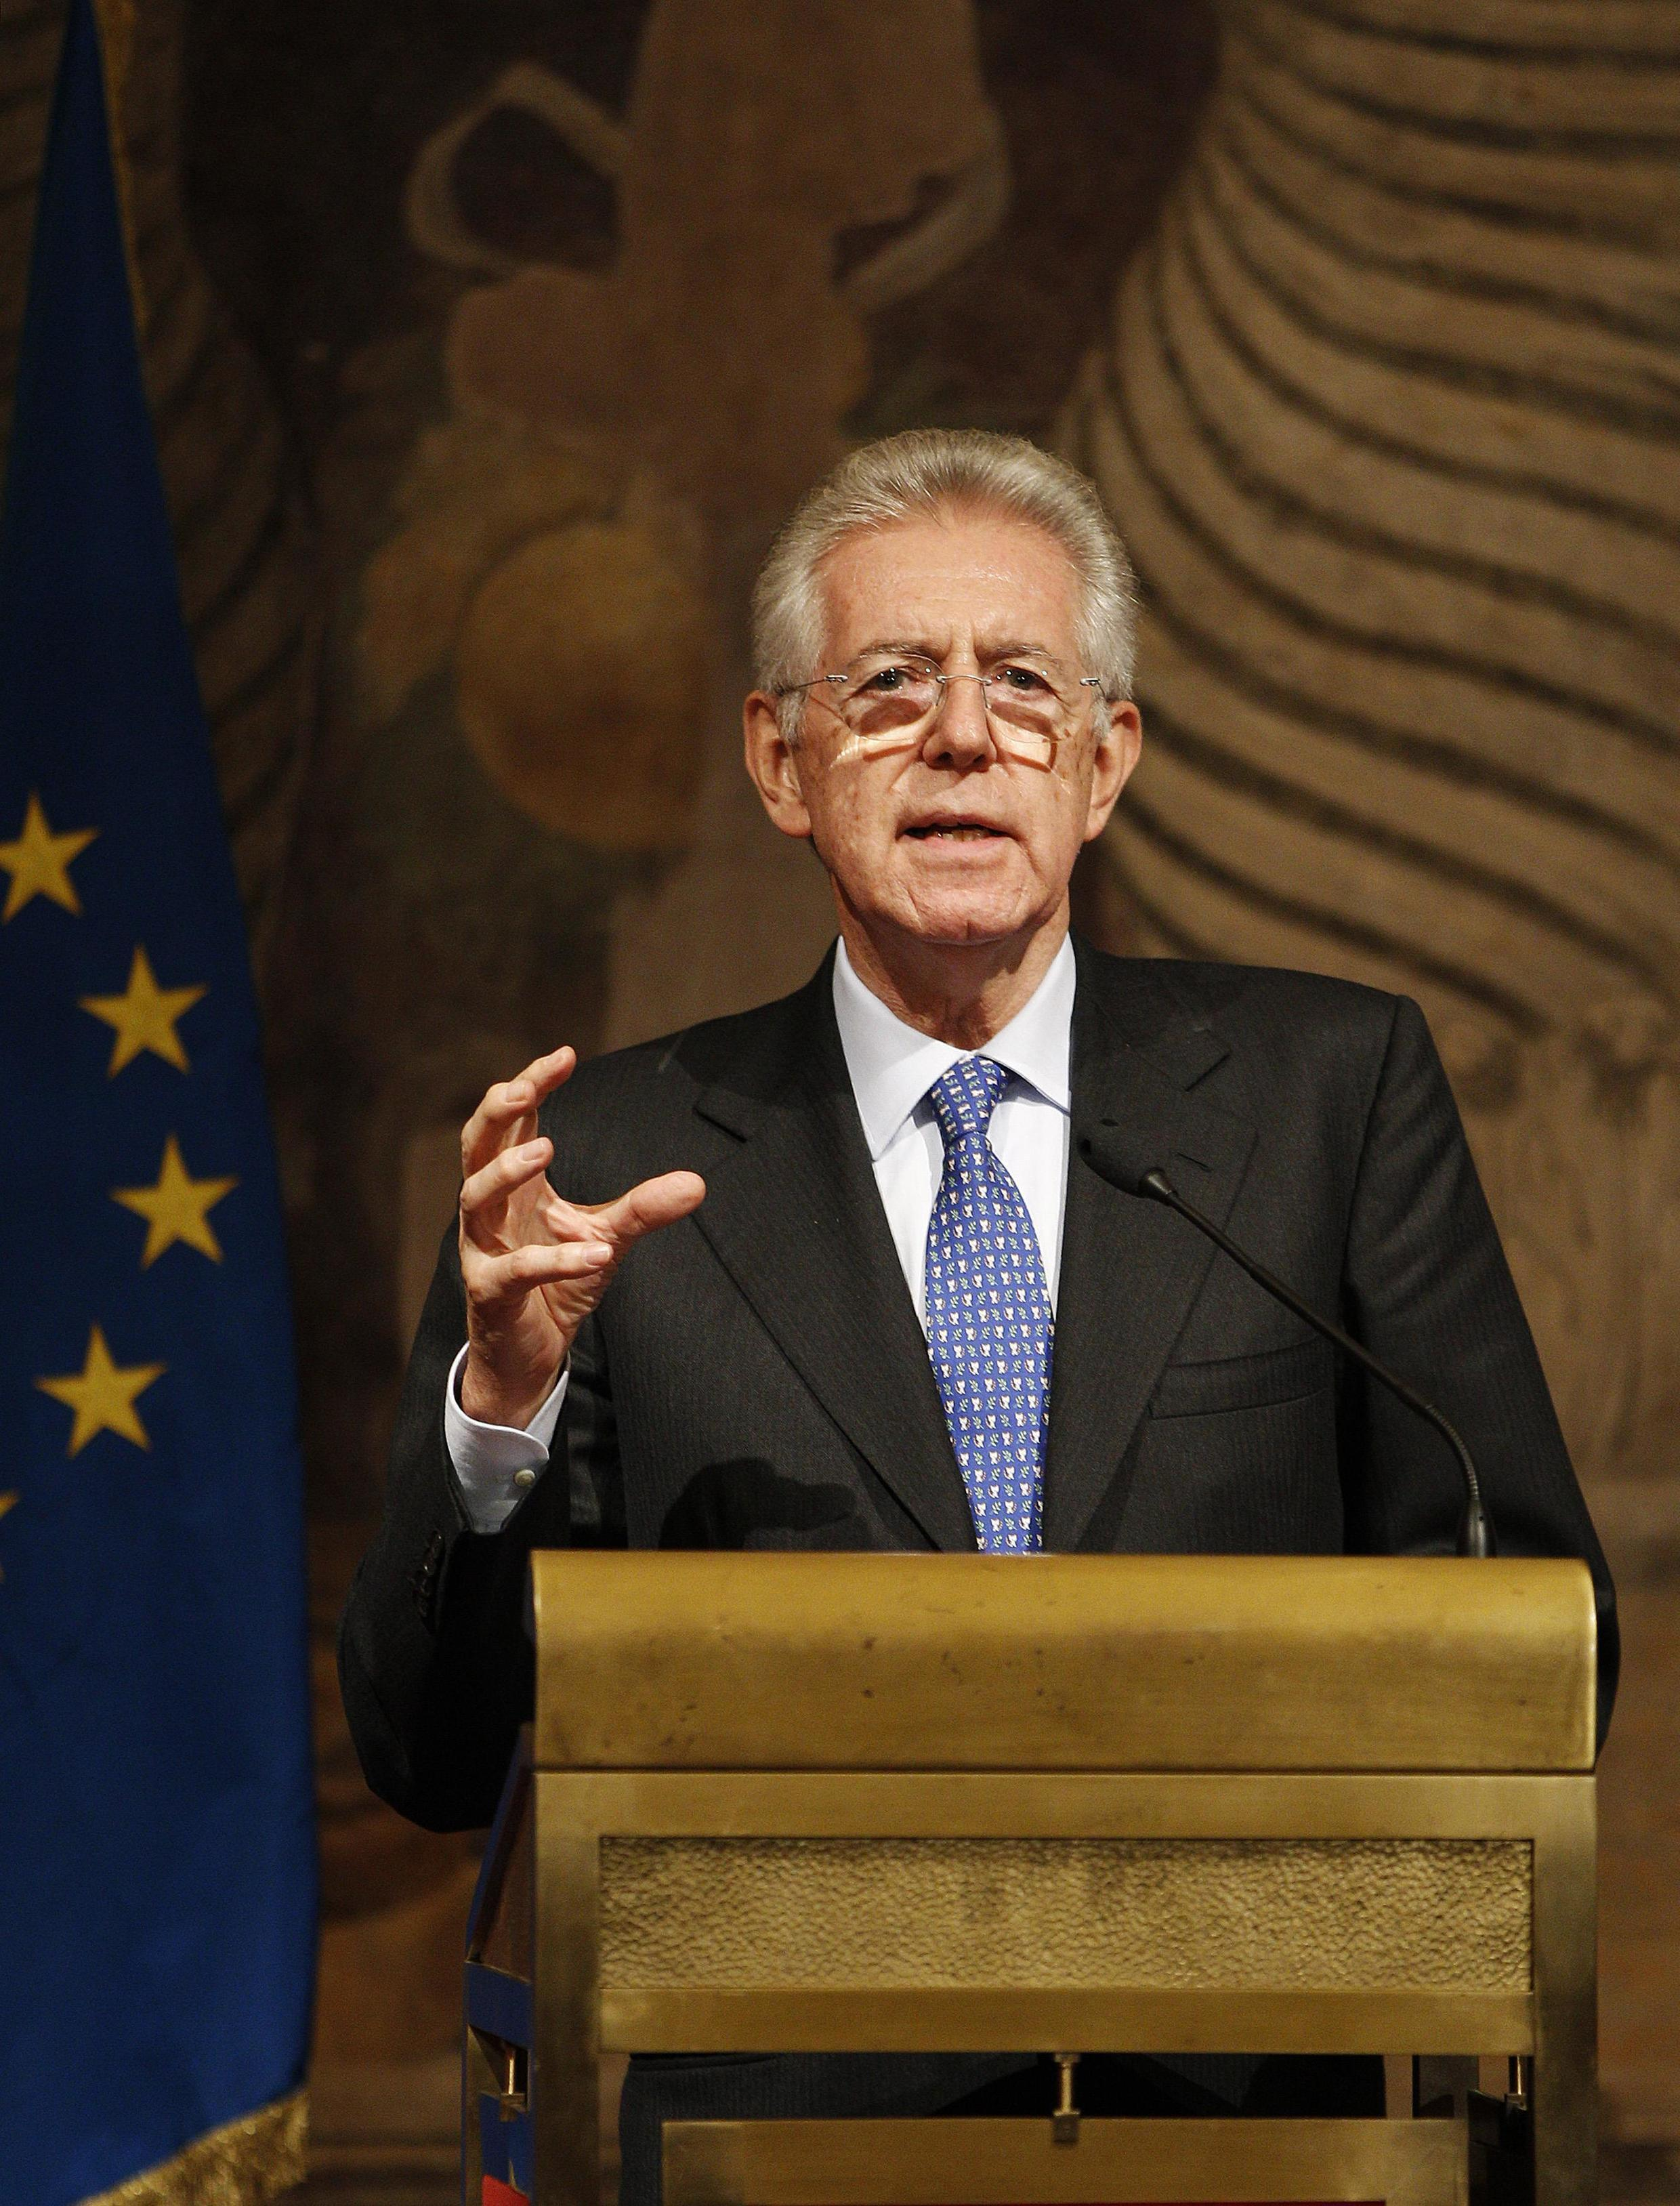 Prime Minister Mario Monti in talks to form a new government